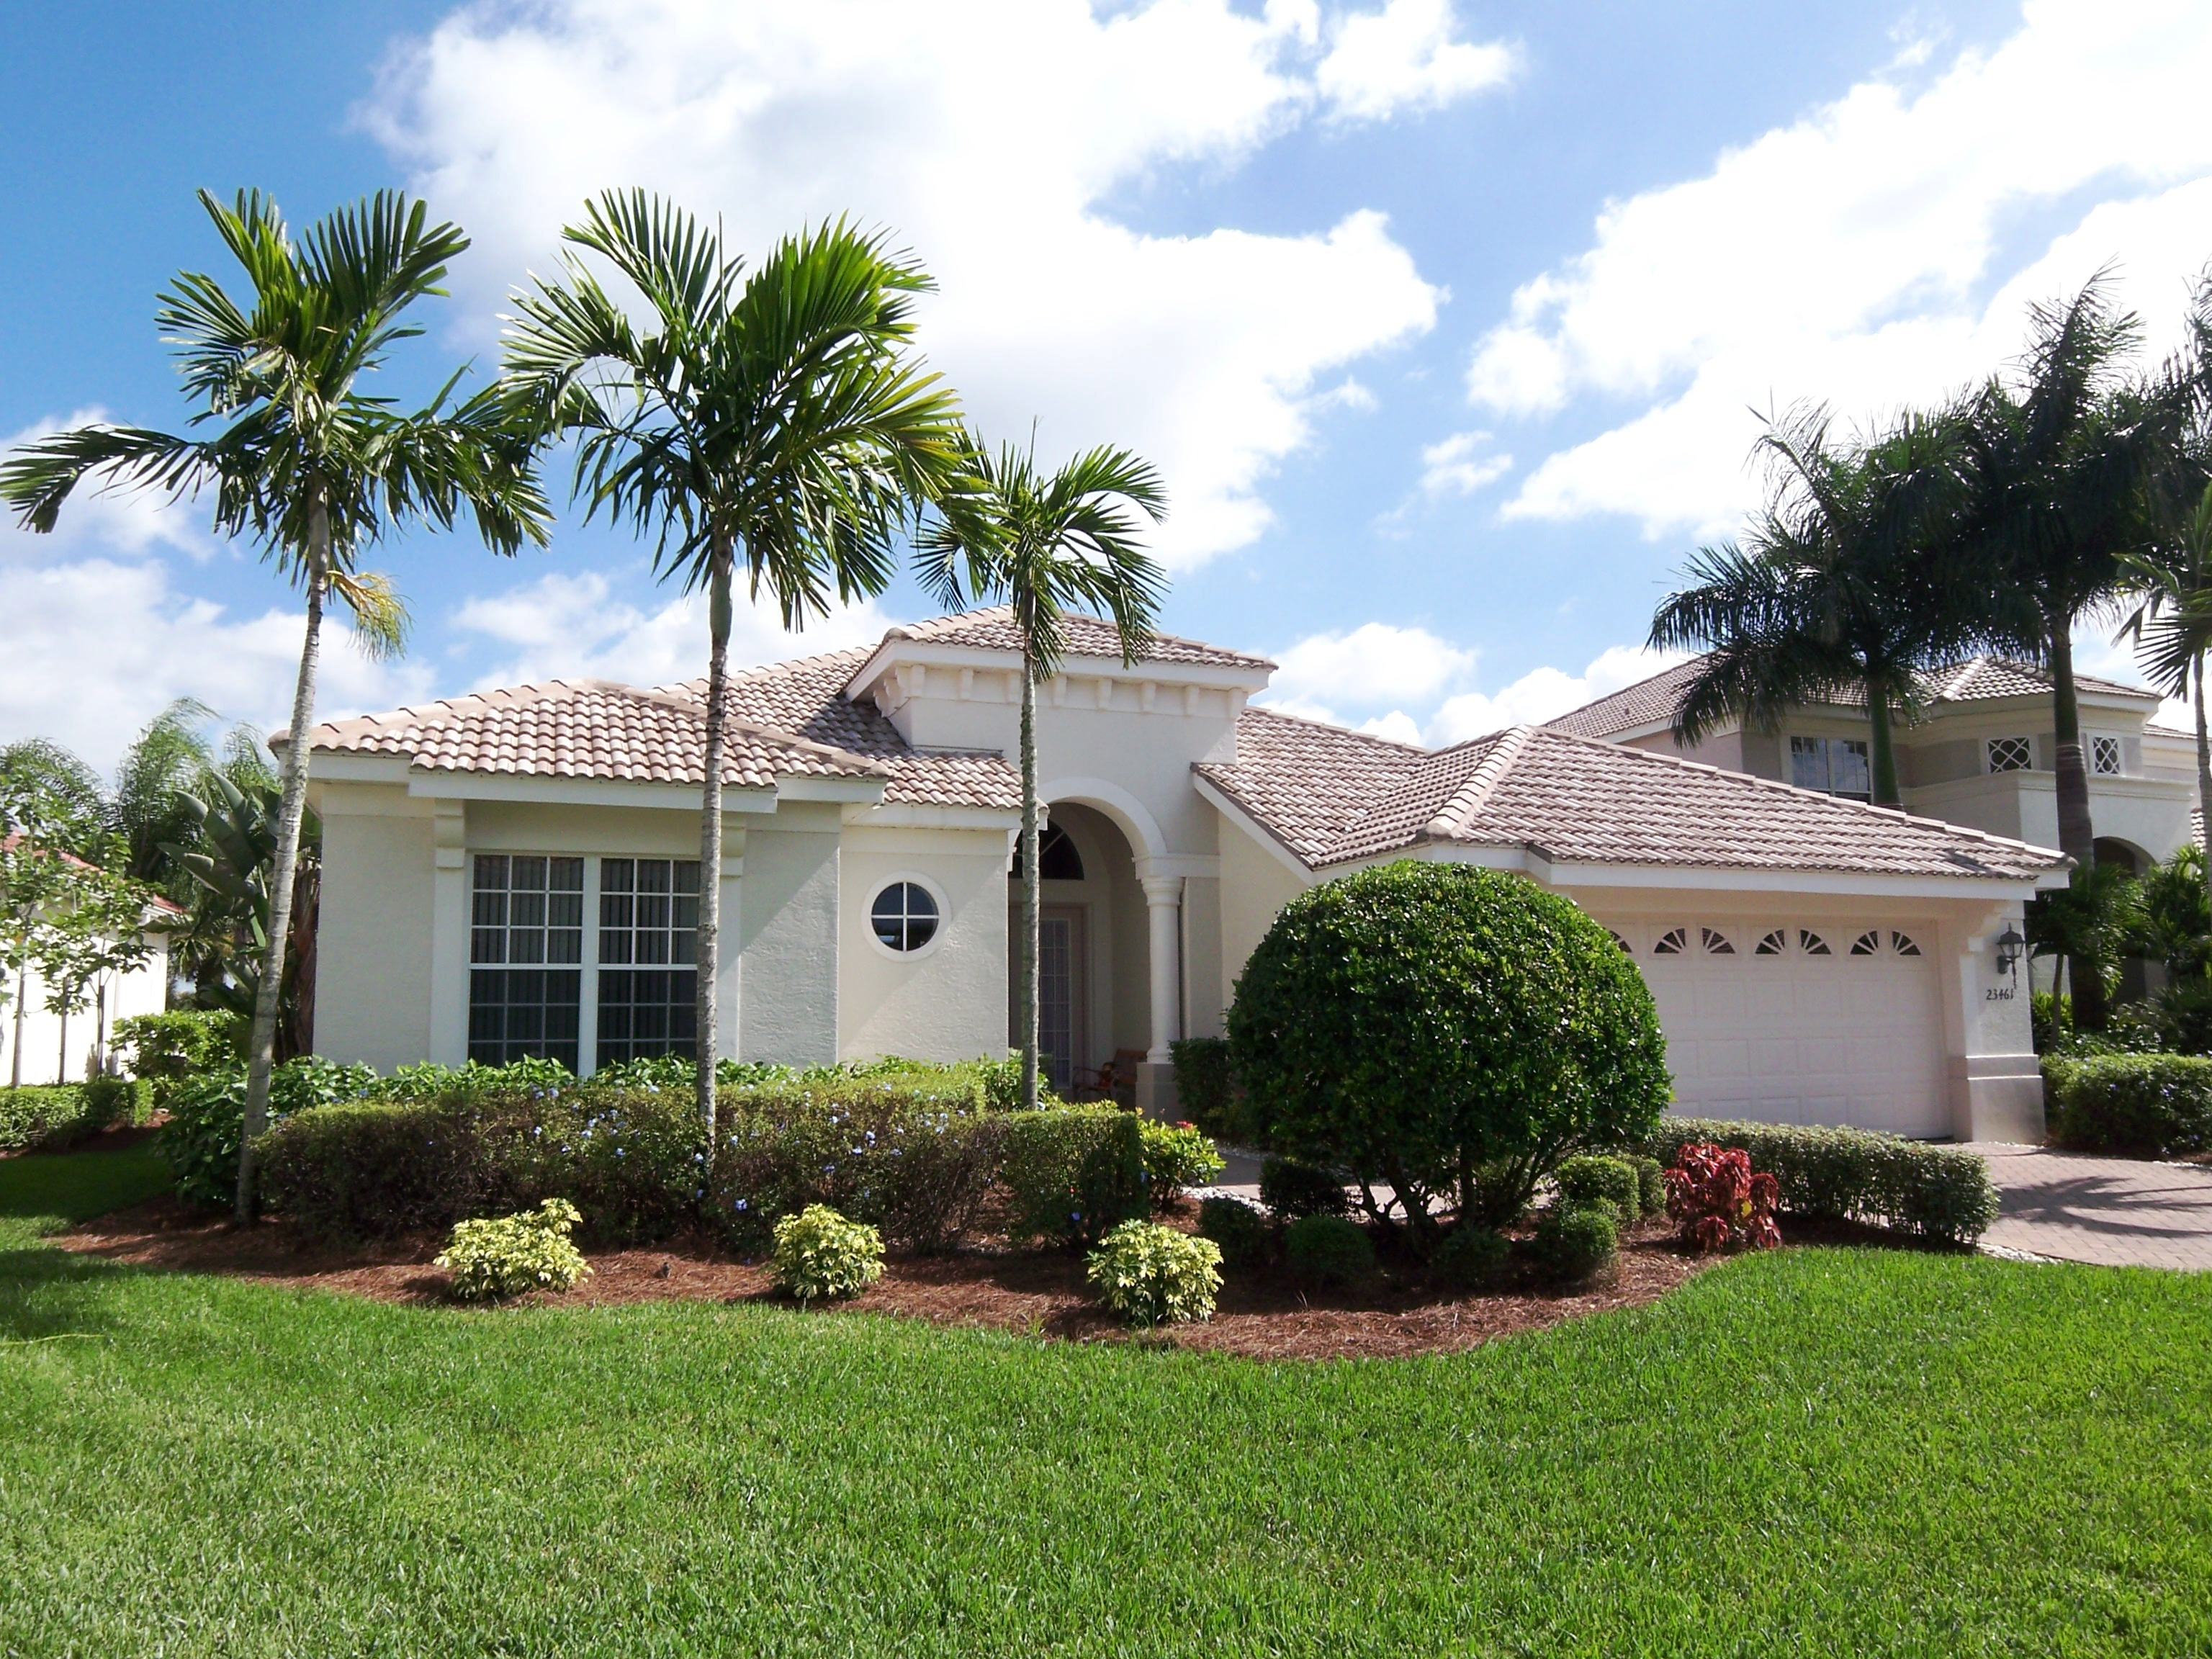 Bonita Springs Copperleaf Home